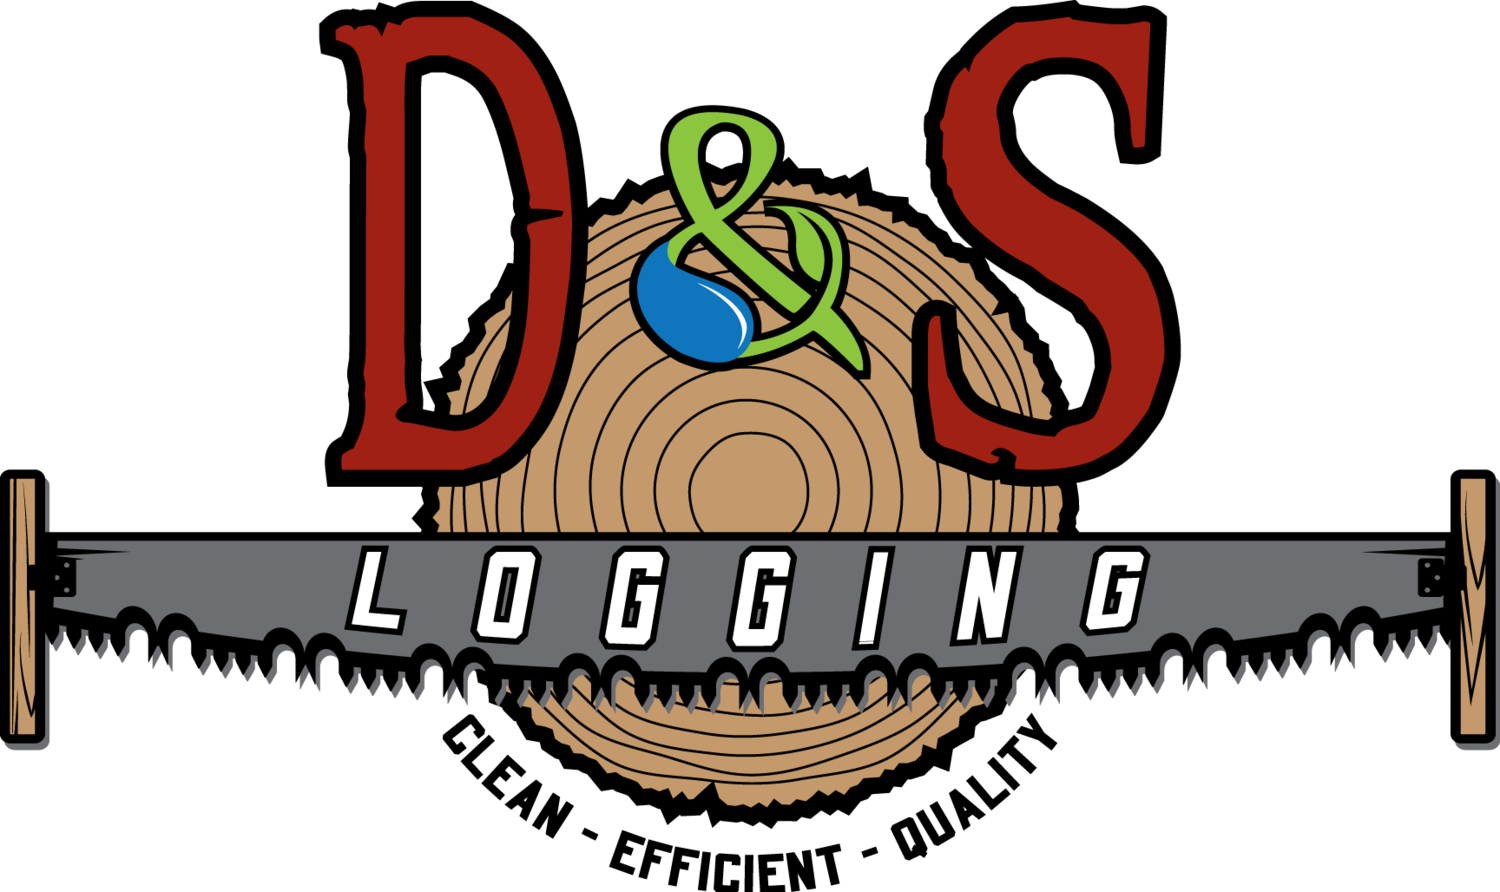 Logs clipart timber. About d s logging